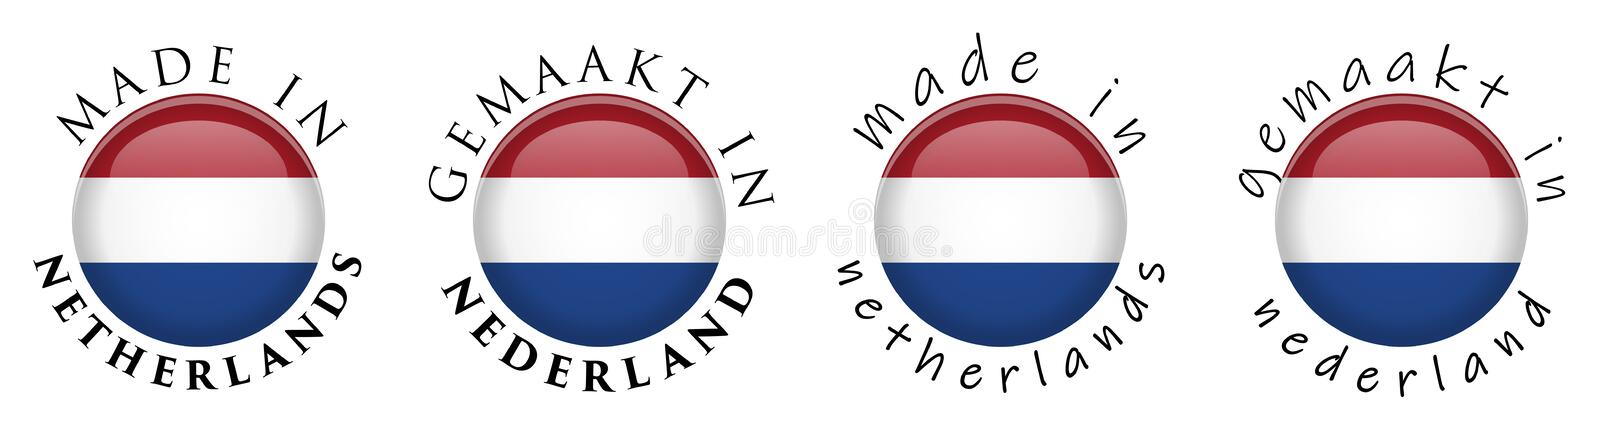 Simple Made in Netherlands / Gemaakt in Nederland Dutch translation 3D button sign. Text around circle with naitional flag. Dece stock illustration